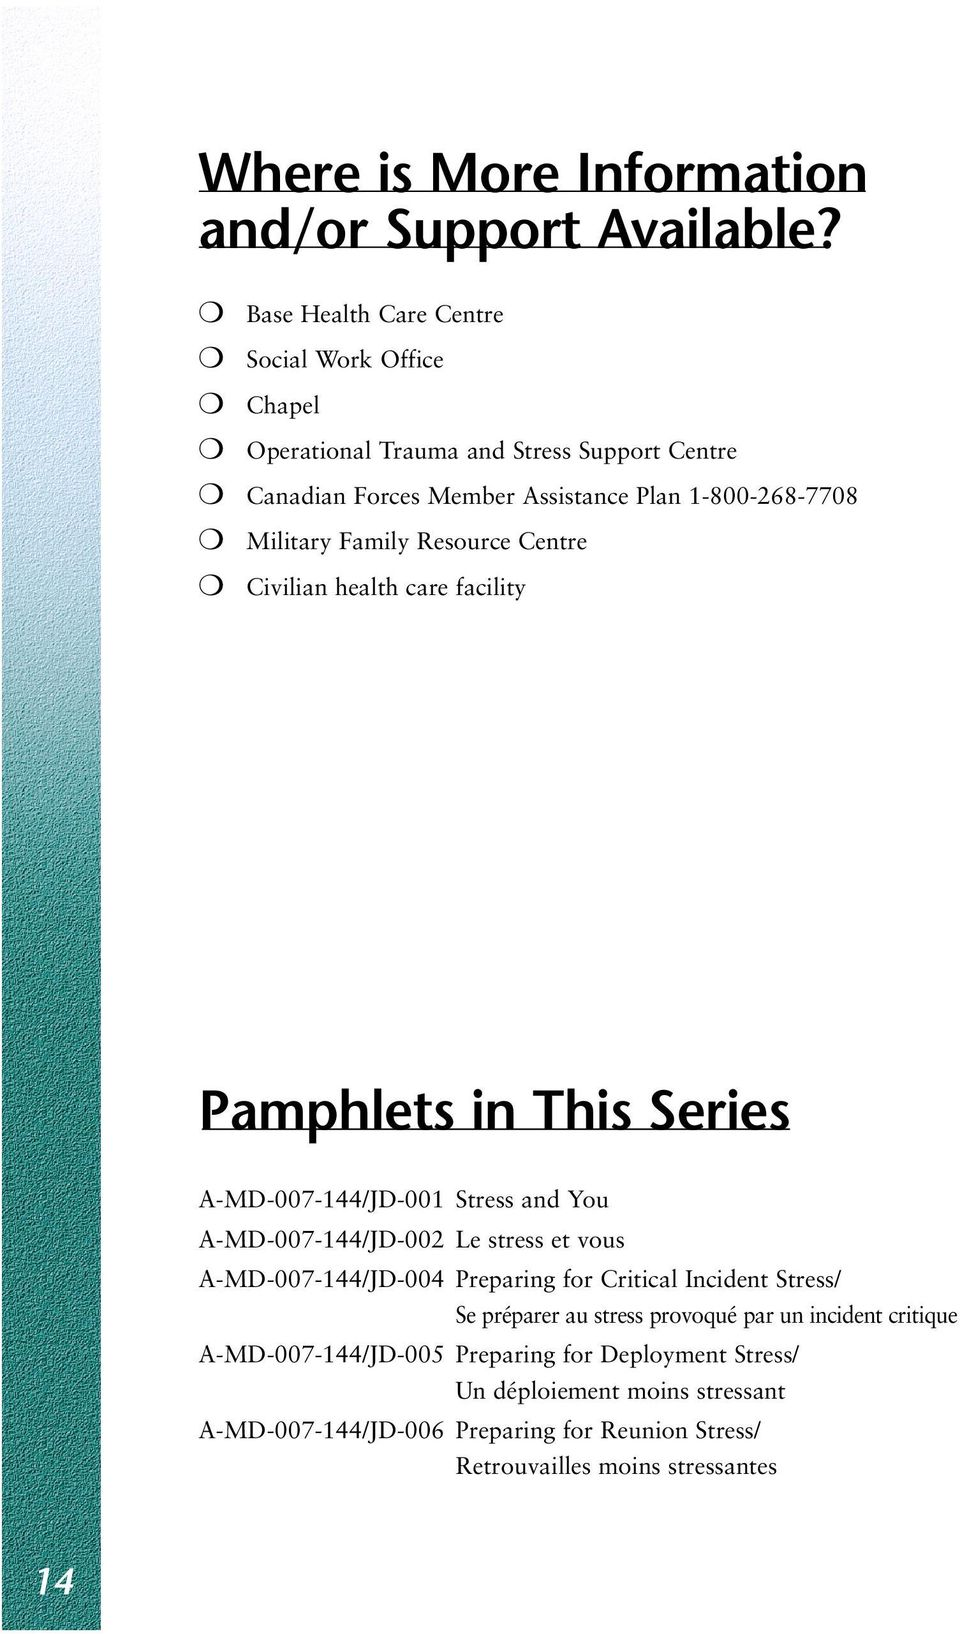 Family Resource Centre Civilian health care facility Pamphlets in This Series A-MD-007-144/JD-001 Stress and You A-MD-007-144/JD-002 Le stress et vous